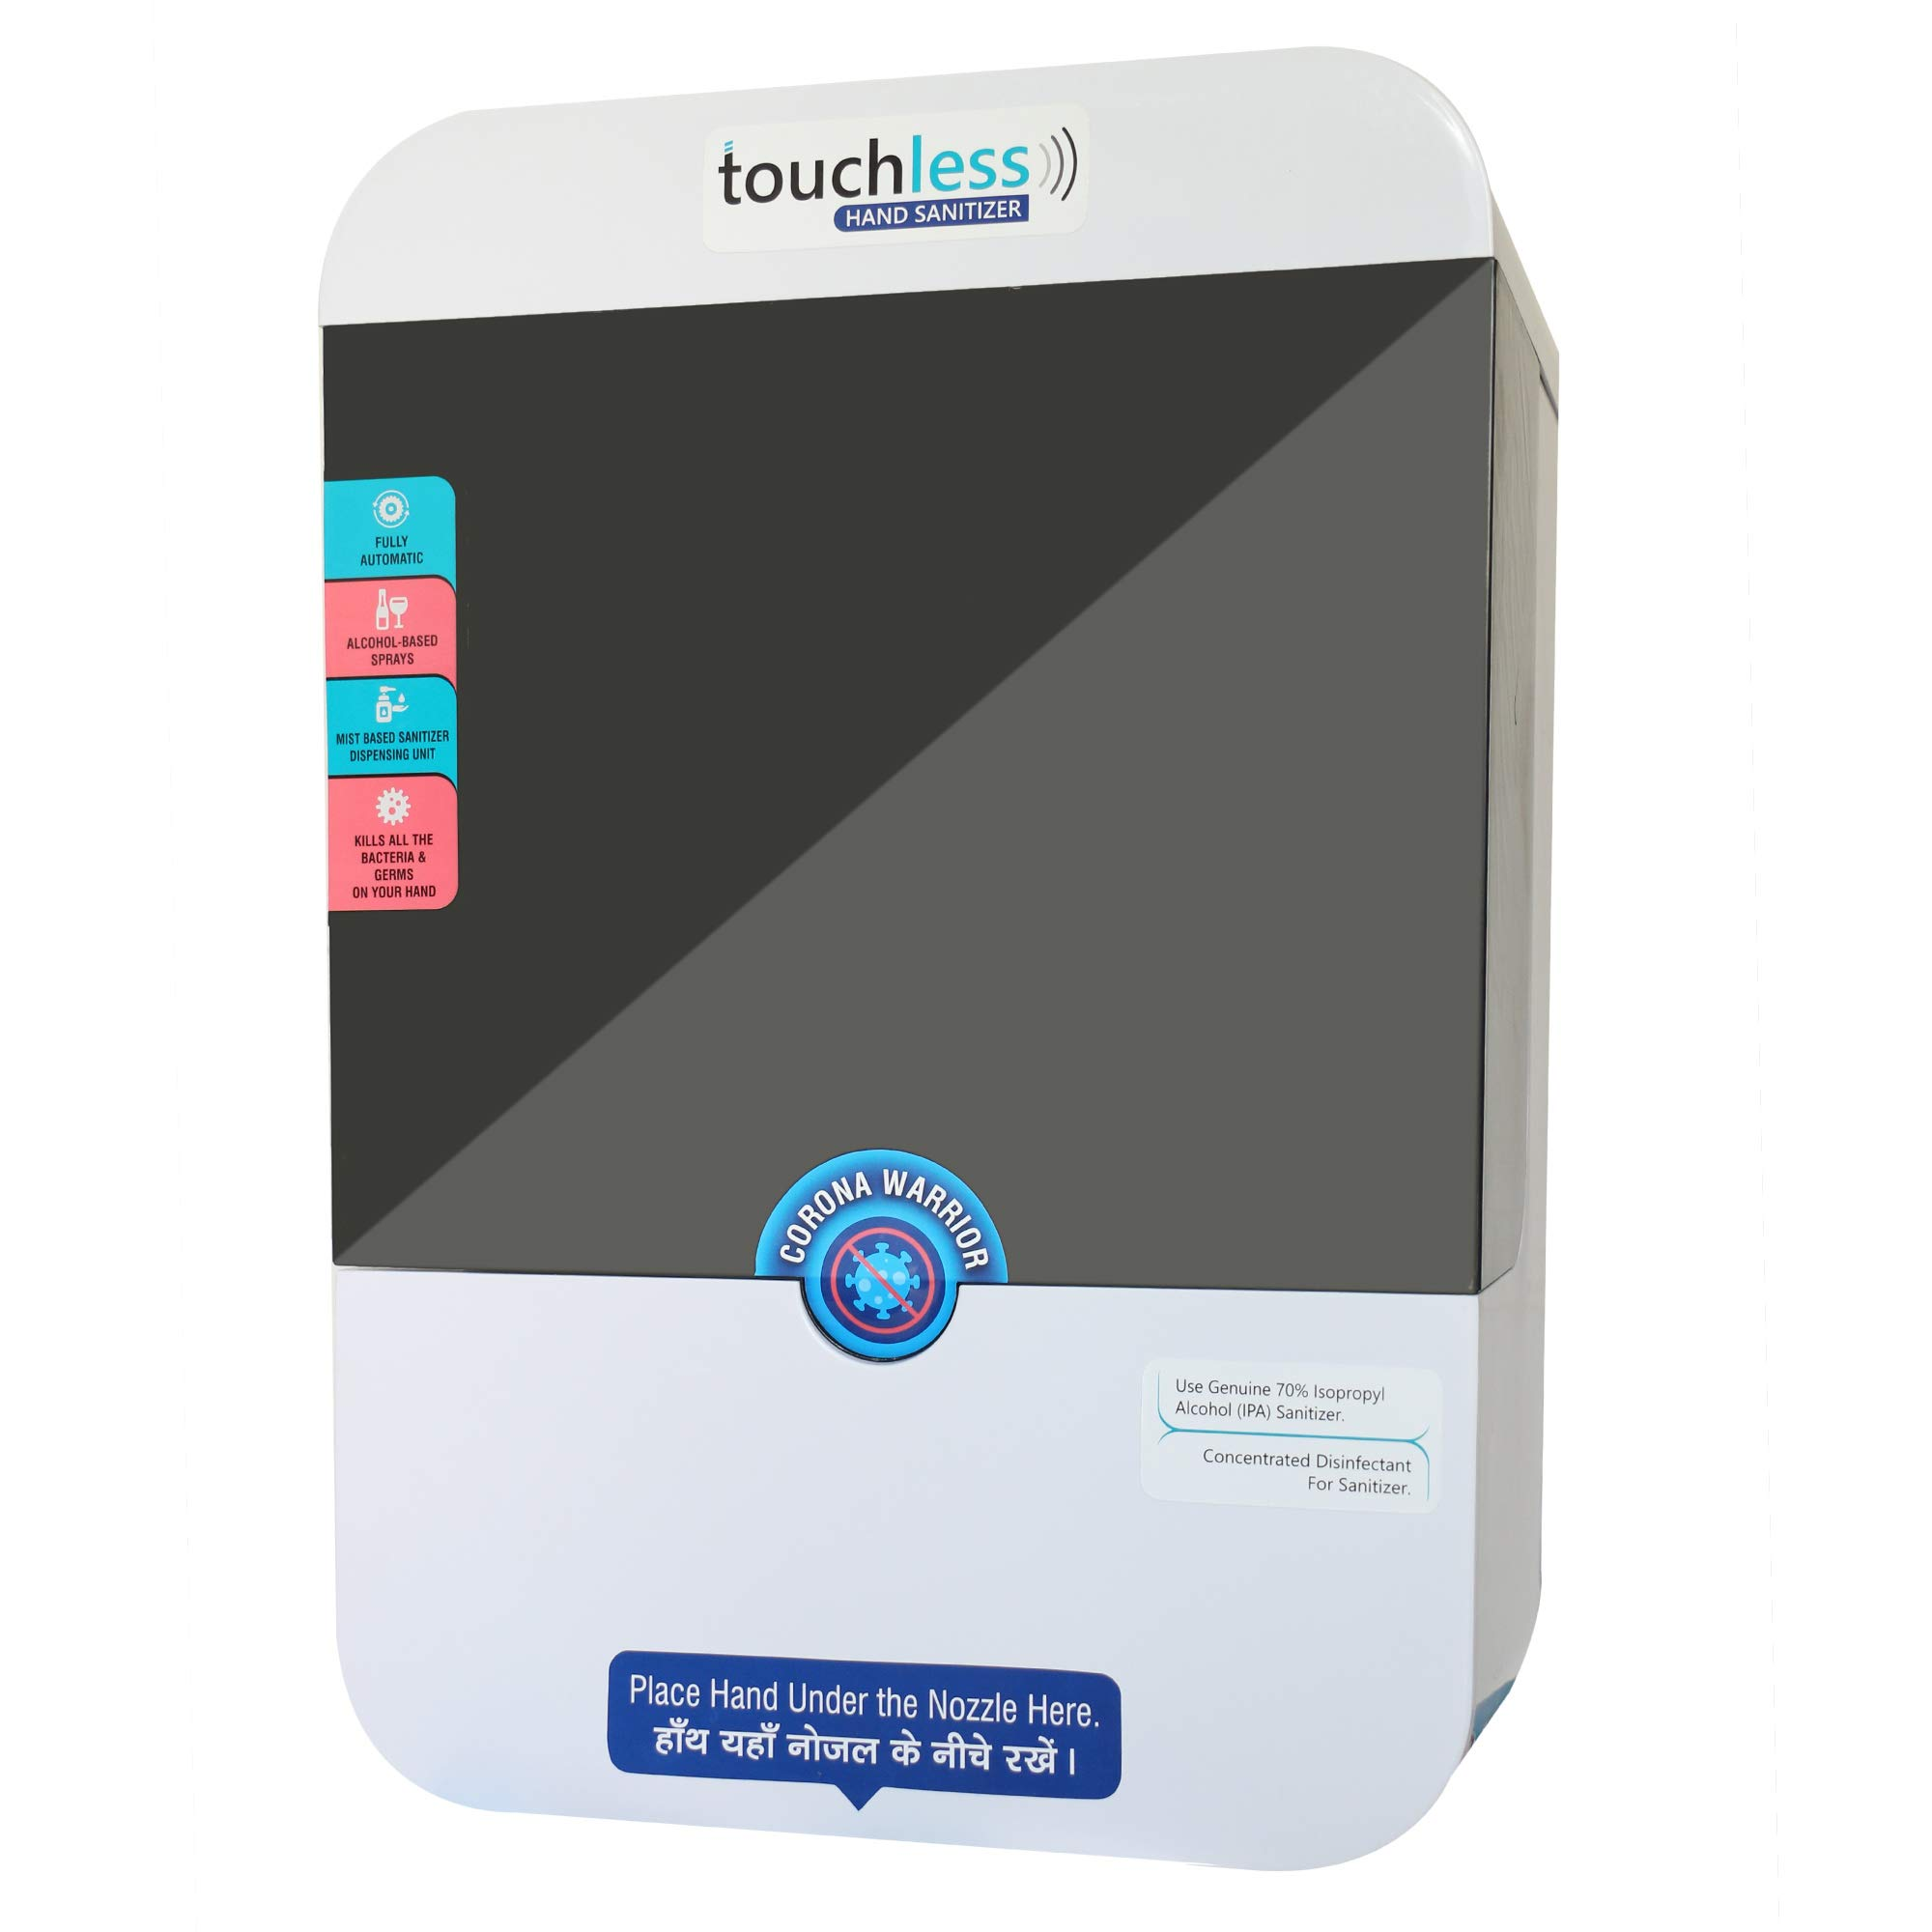 touchless sanitizer Dispenser/sanitizer Dispenser Automatic for Home/Office/Corporate/Industrial/Government Use, Touch Free sanitizer Dispenser Automatic